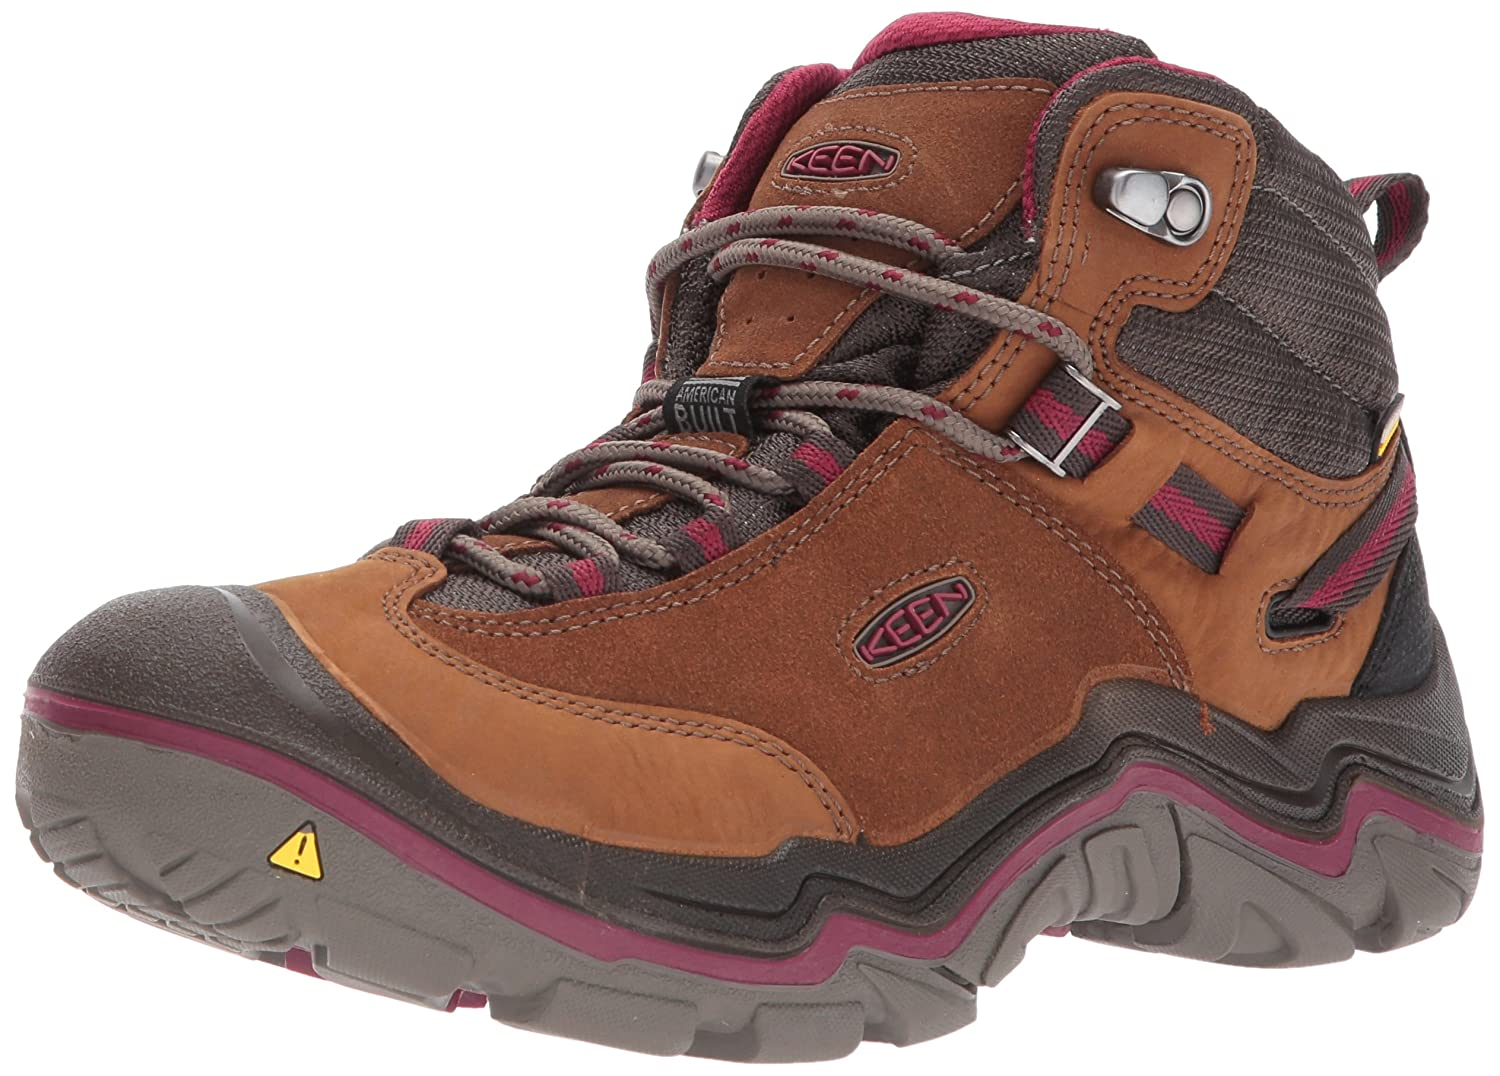 KEEN Women's Laurel Waterproof Mid Hiking Boot B01N1GRSSQ 5.5 B(M) US|Monks Robe/Rhododendron